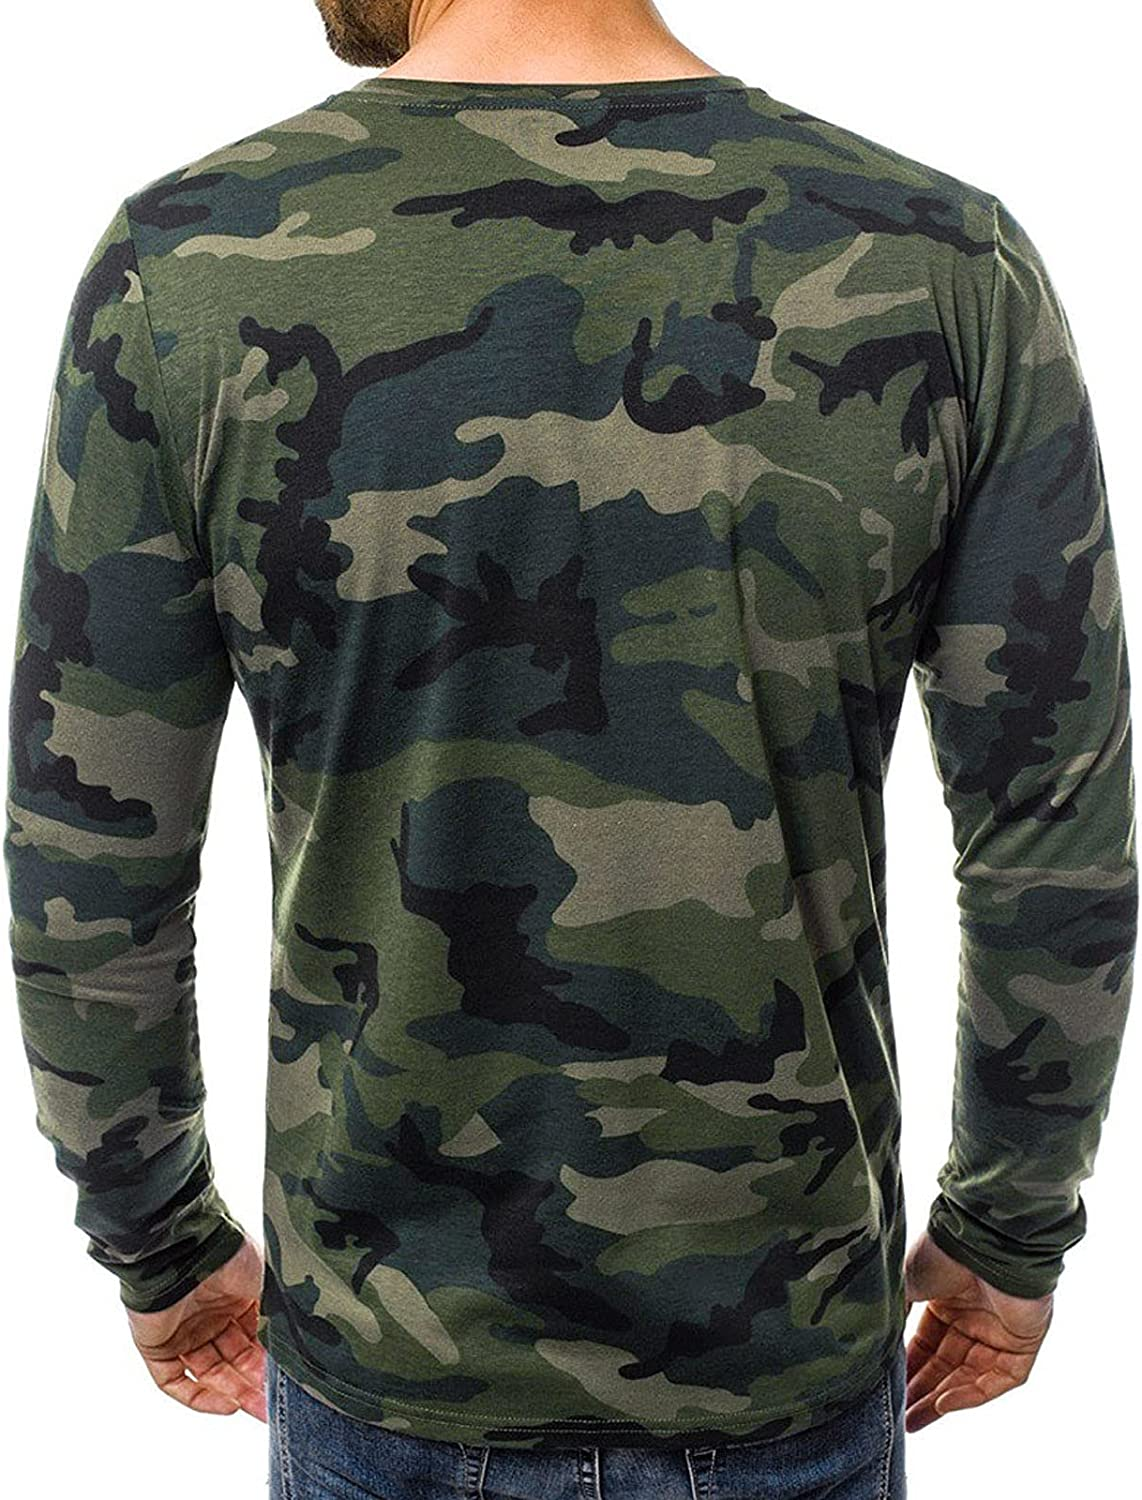 FUNEY Long Sleeve Tee Shirts for Men Crewneck Camo Performance Fishing Shirt Casual Fitness Stretch Military Tees Tops